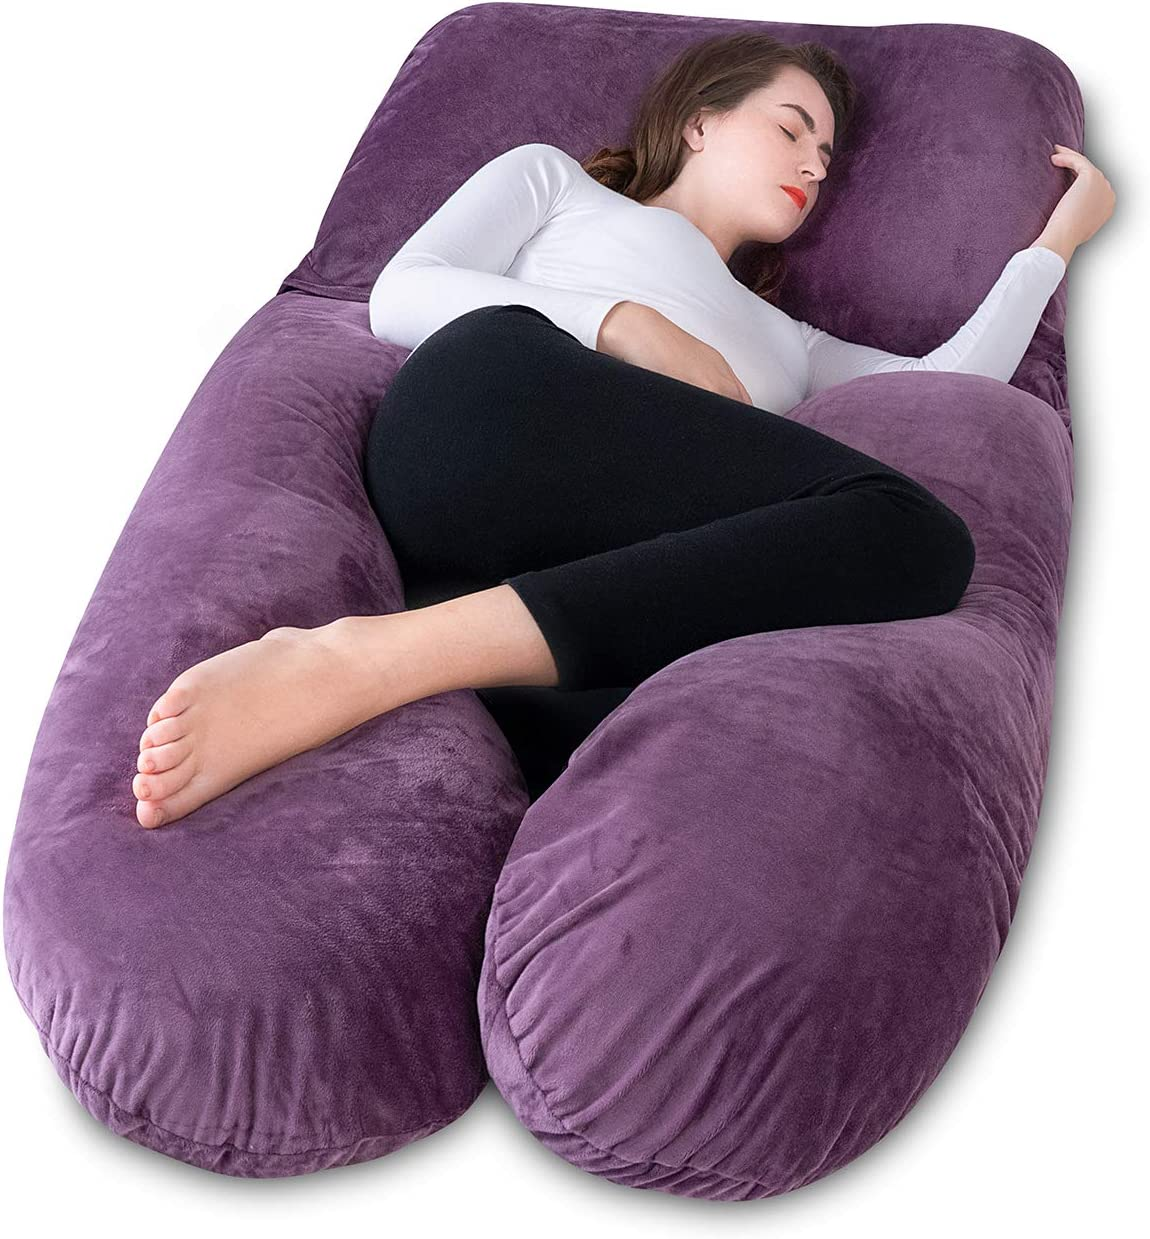 Legs and Belly Meiz Pregnancy Pillow with Velvet Cover,Adjustable Belt and Detachable Extension Hips Purple U-Shape Full Body Pillow for Support Back